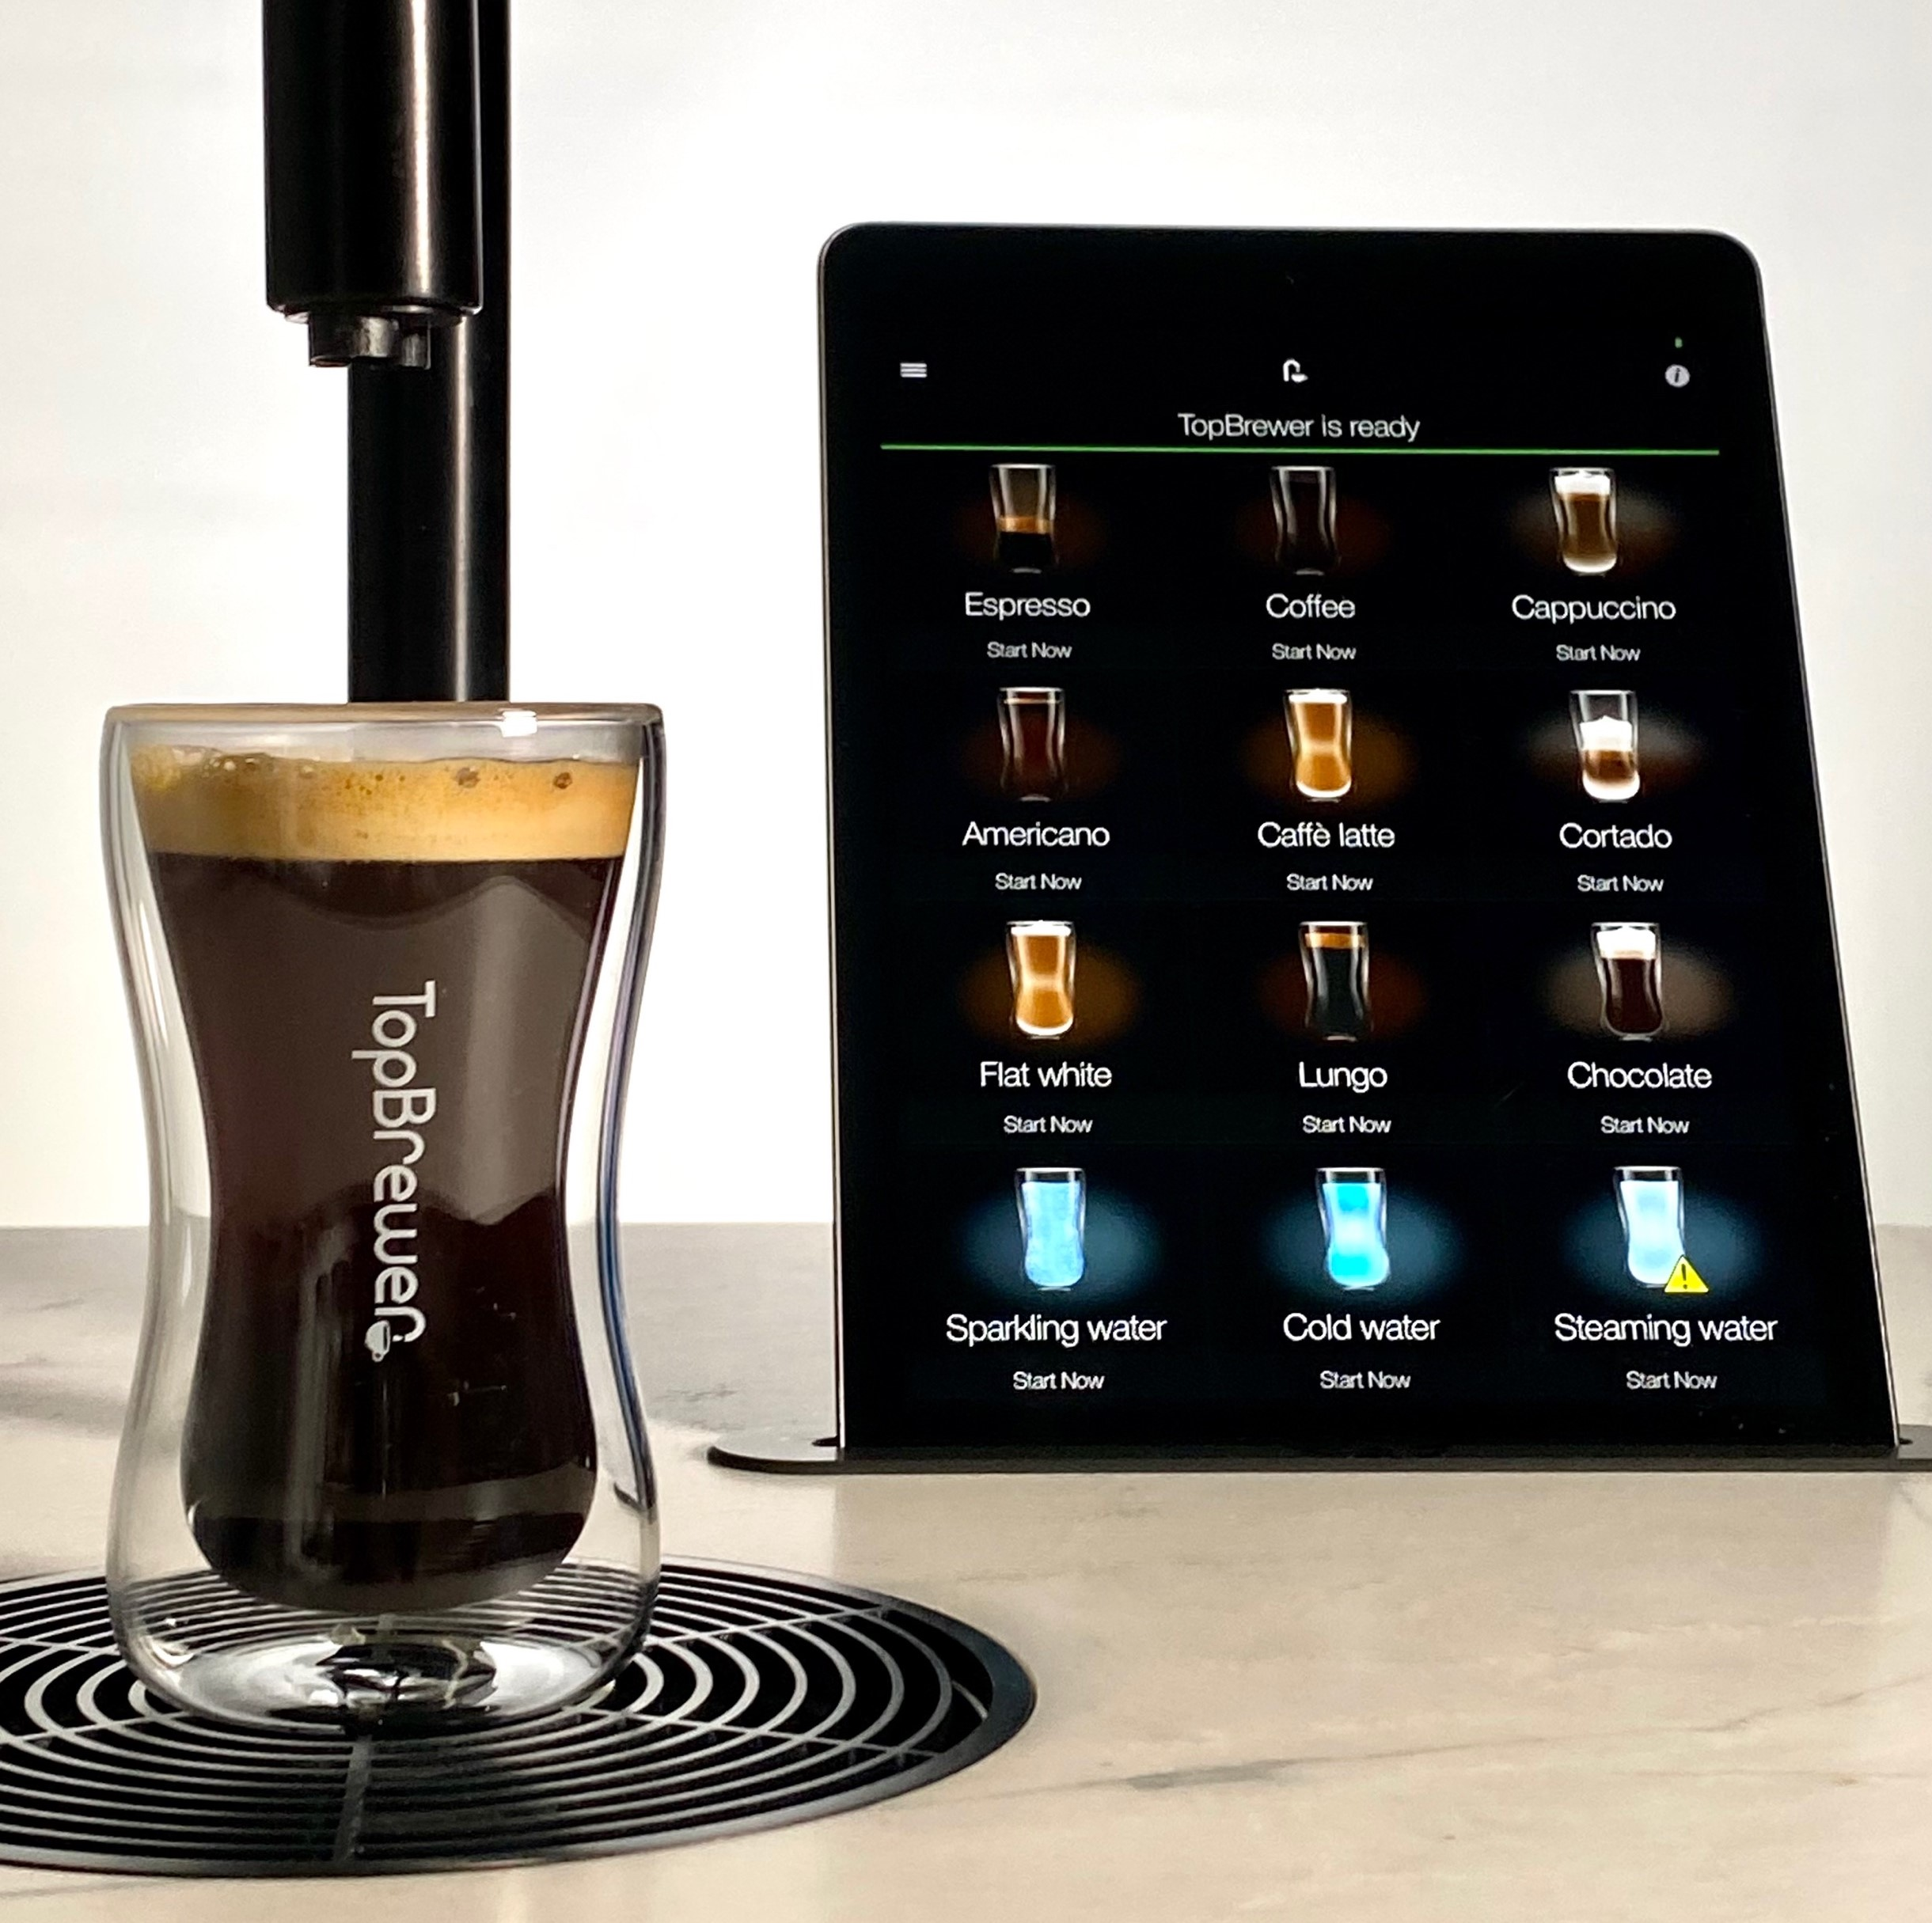 TopBrewer beverage selection screen